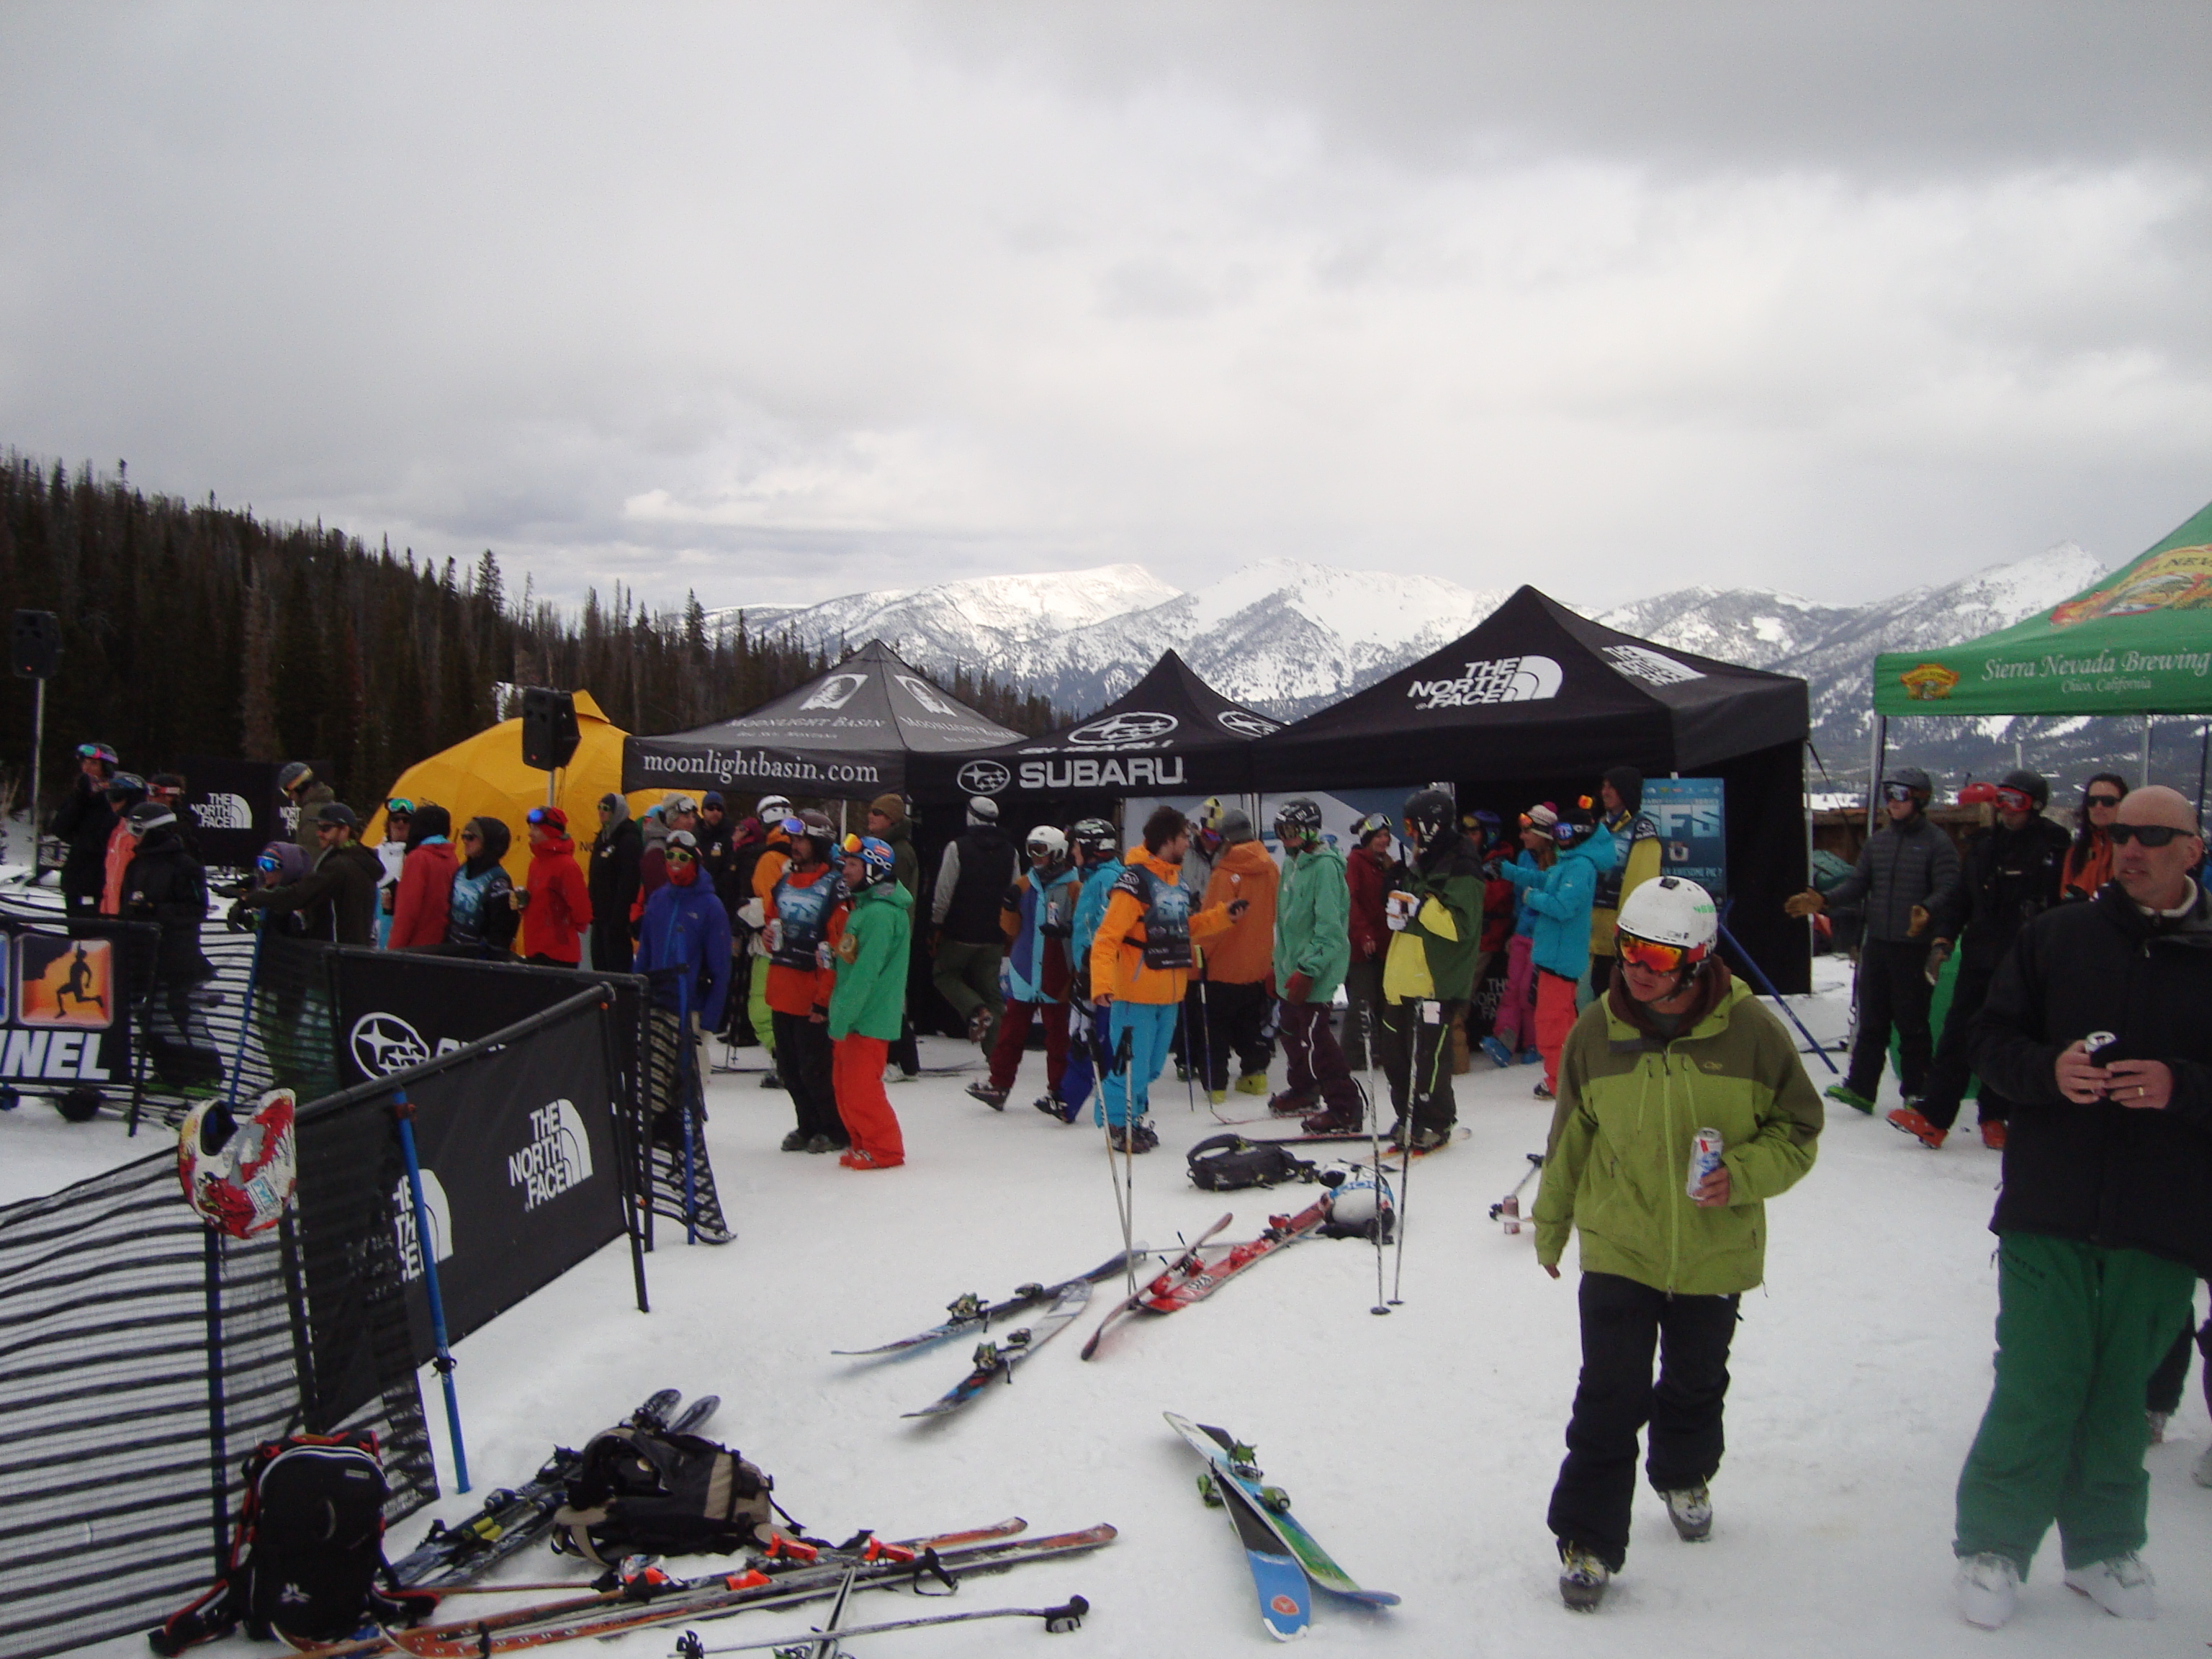 2013 Freeride World Qualifier Results & Video From Moonlight Basin